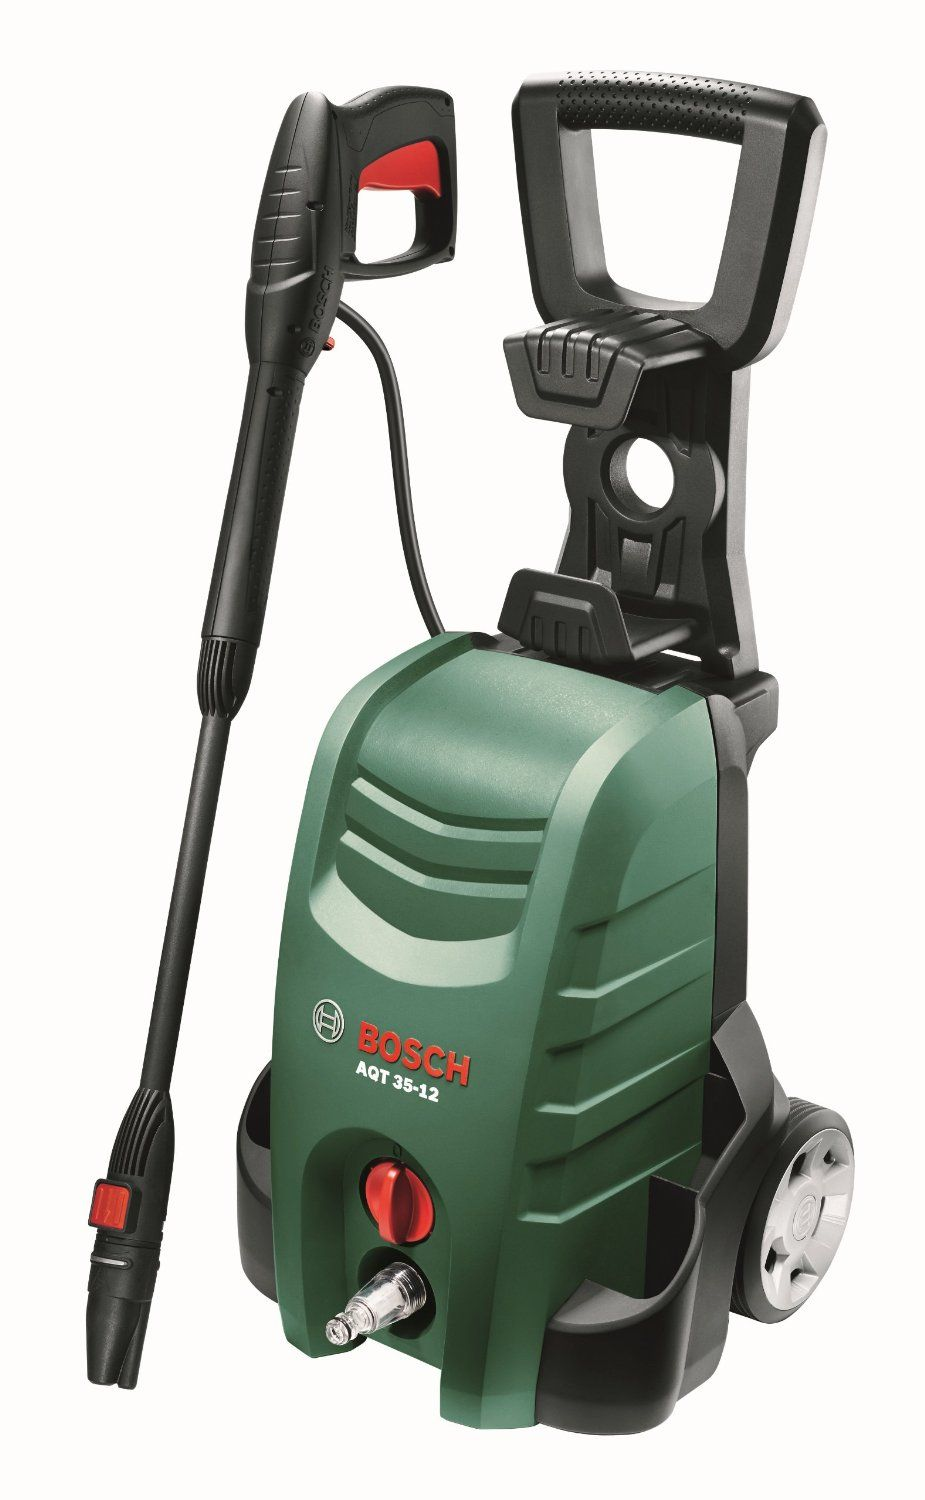 Bosch Aqt 35 12 High Pressure Washer Home Garden Cleaner Pressure Washer Electric Pressure Washer Car Washer